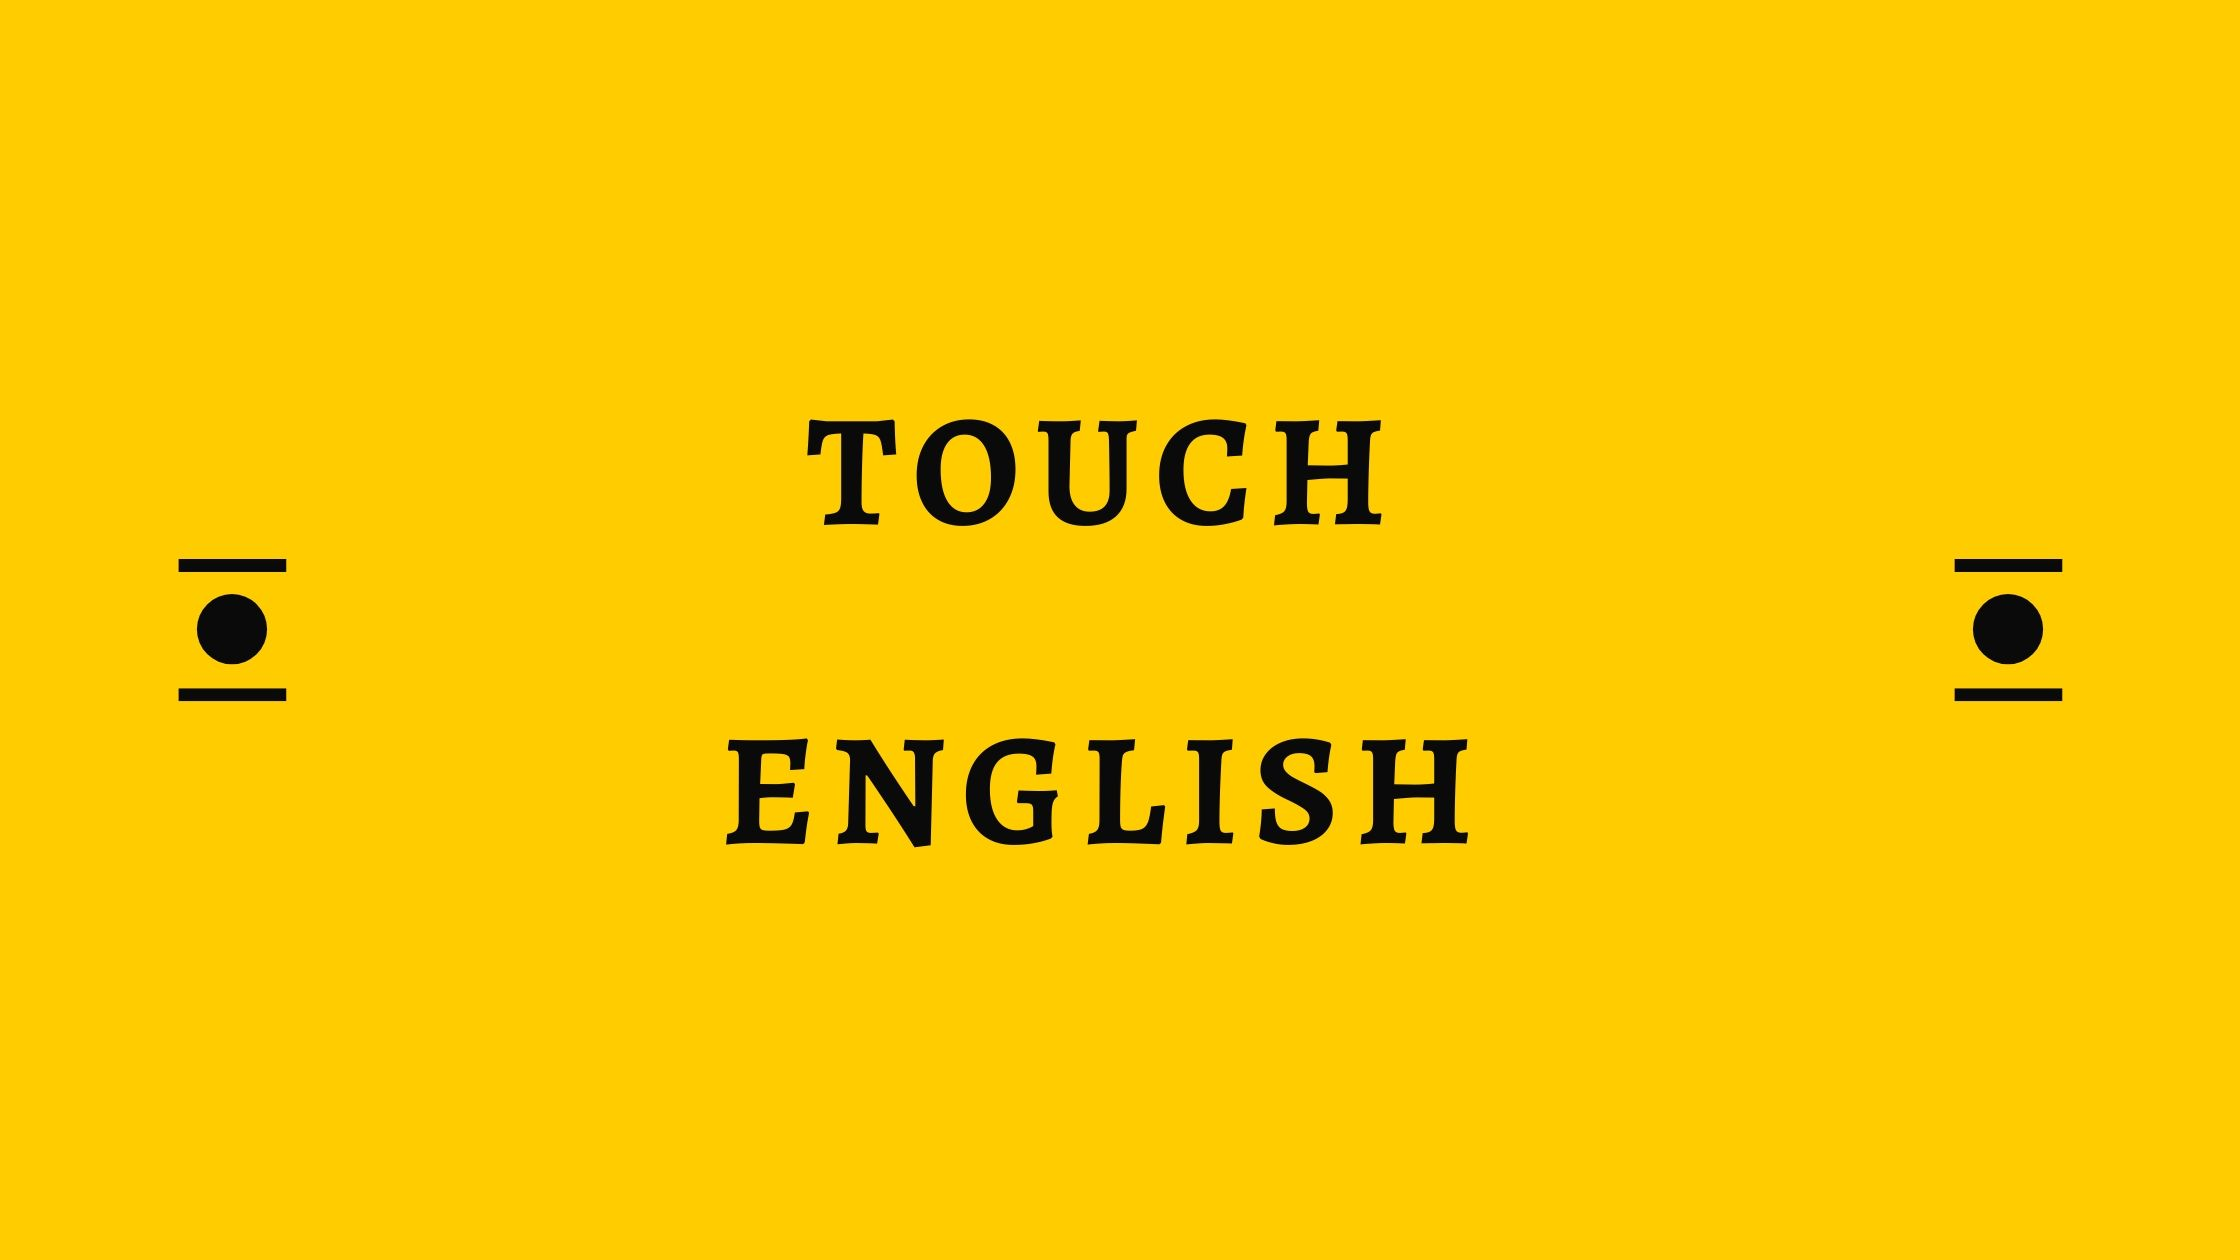 Touch english